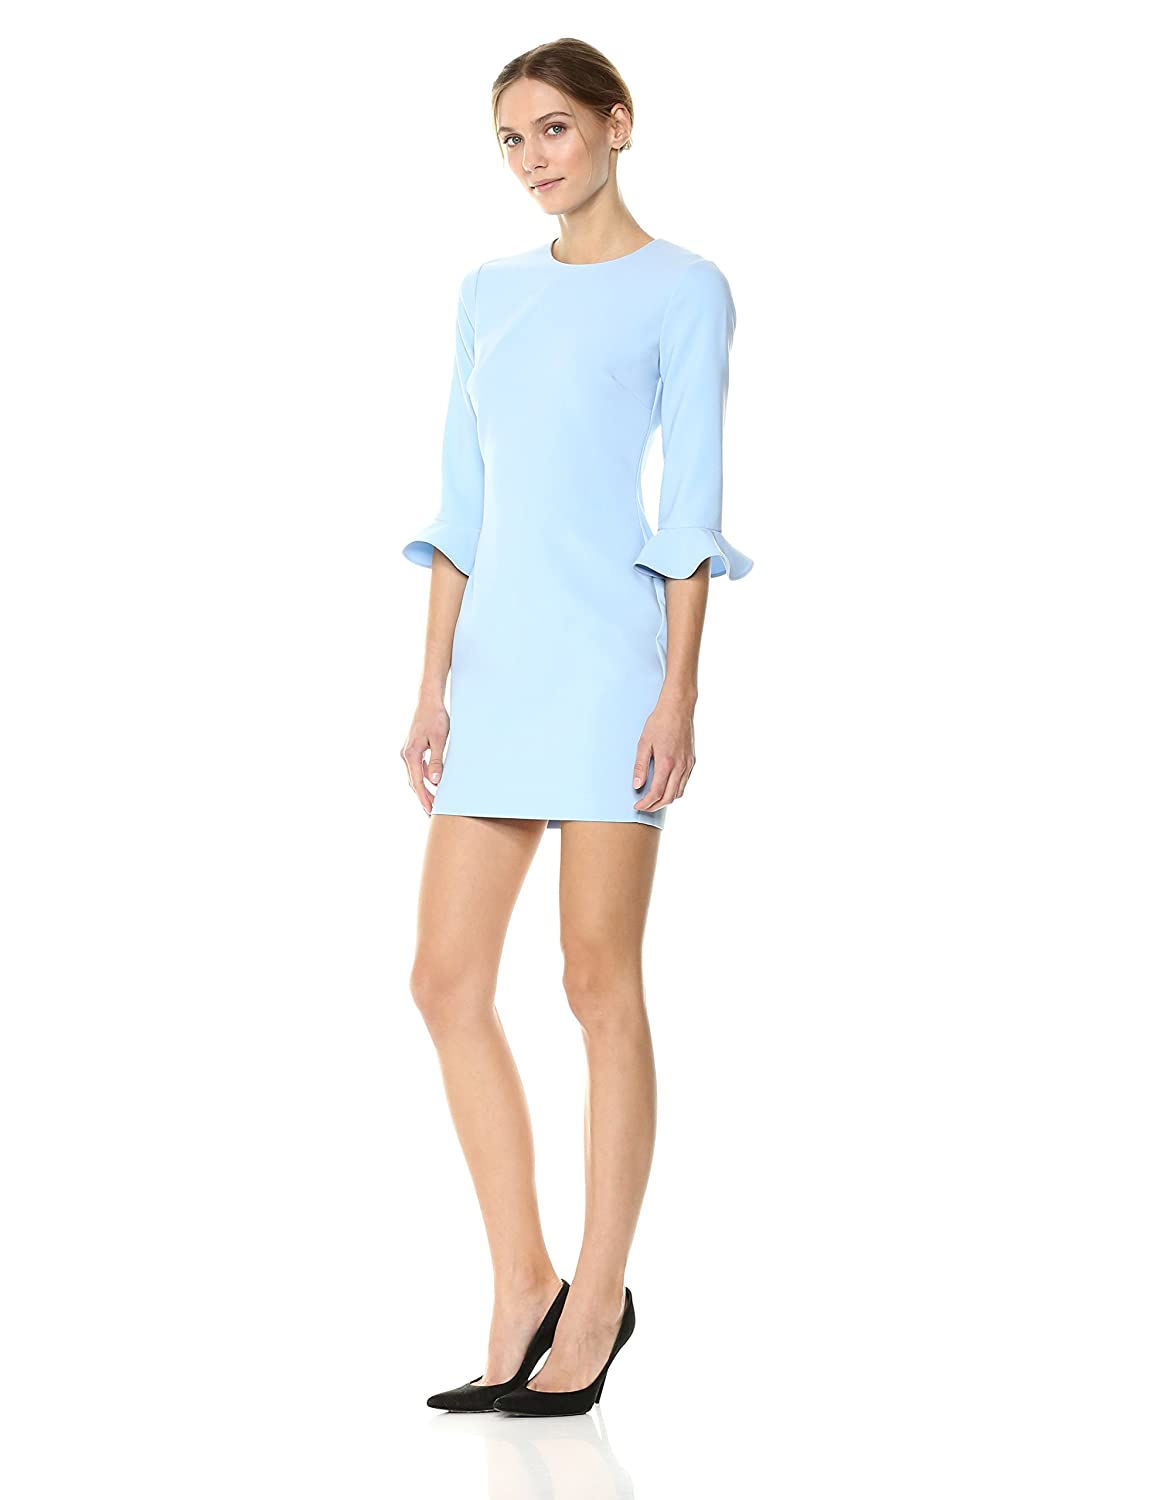 blueebell LIKELY Womens Bedford Dress Cocktail Dress